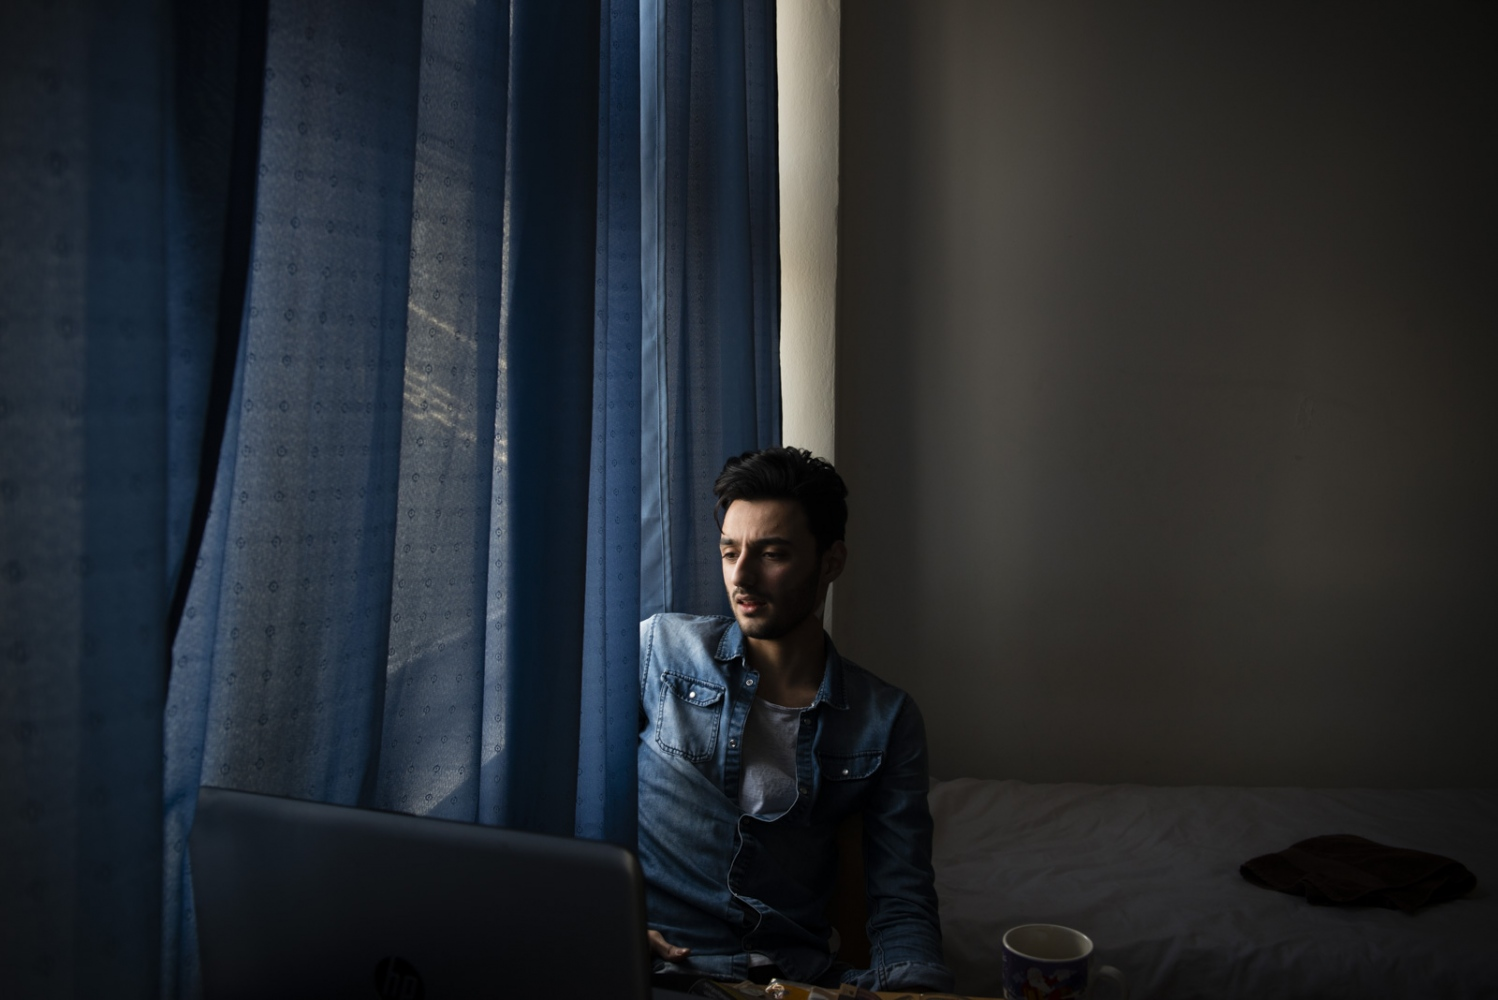 BERLIN| GERMANY | 2017-03-04 | Ramez (24), on his moving day, checks his Facebook in his old room. With the housing crisis that is going on in Berlin and across Germany, finding an apartment or a room to rent has become a nearly impossible task, for locals as well as refugees.